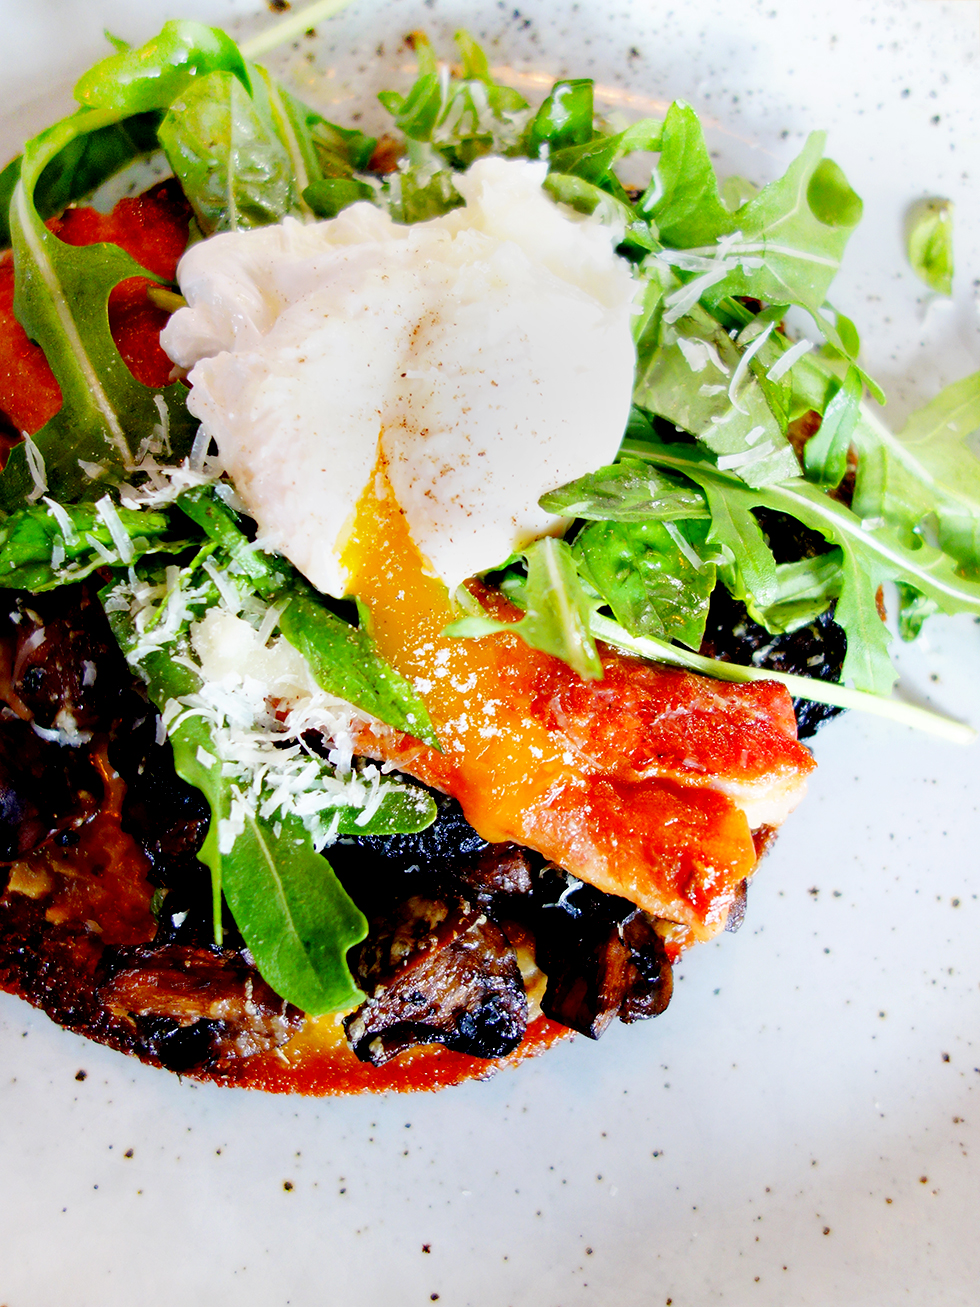 Finlay & Sons no 917 Gluten Free Polenta and Mushroom Pizza with Thick Cut Bacon